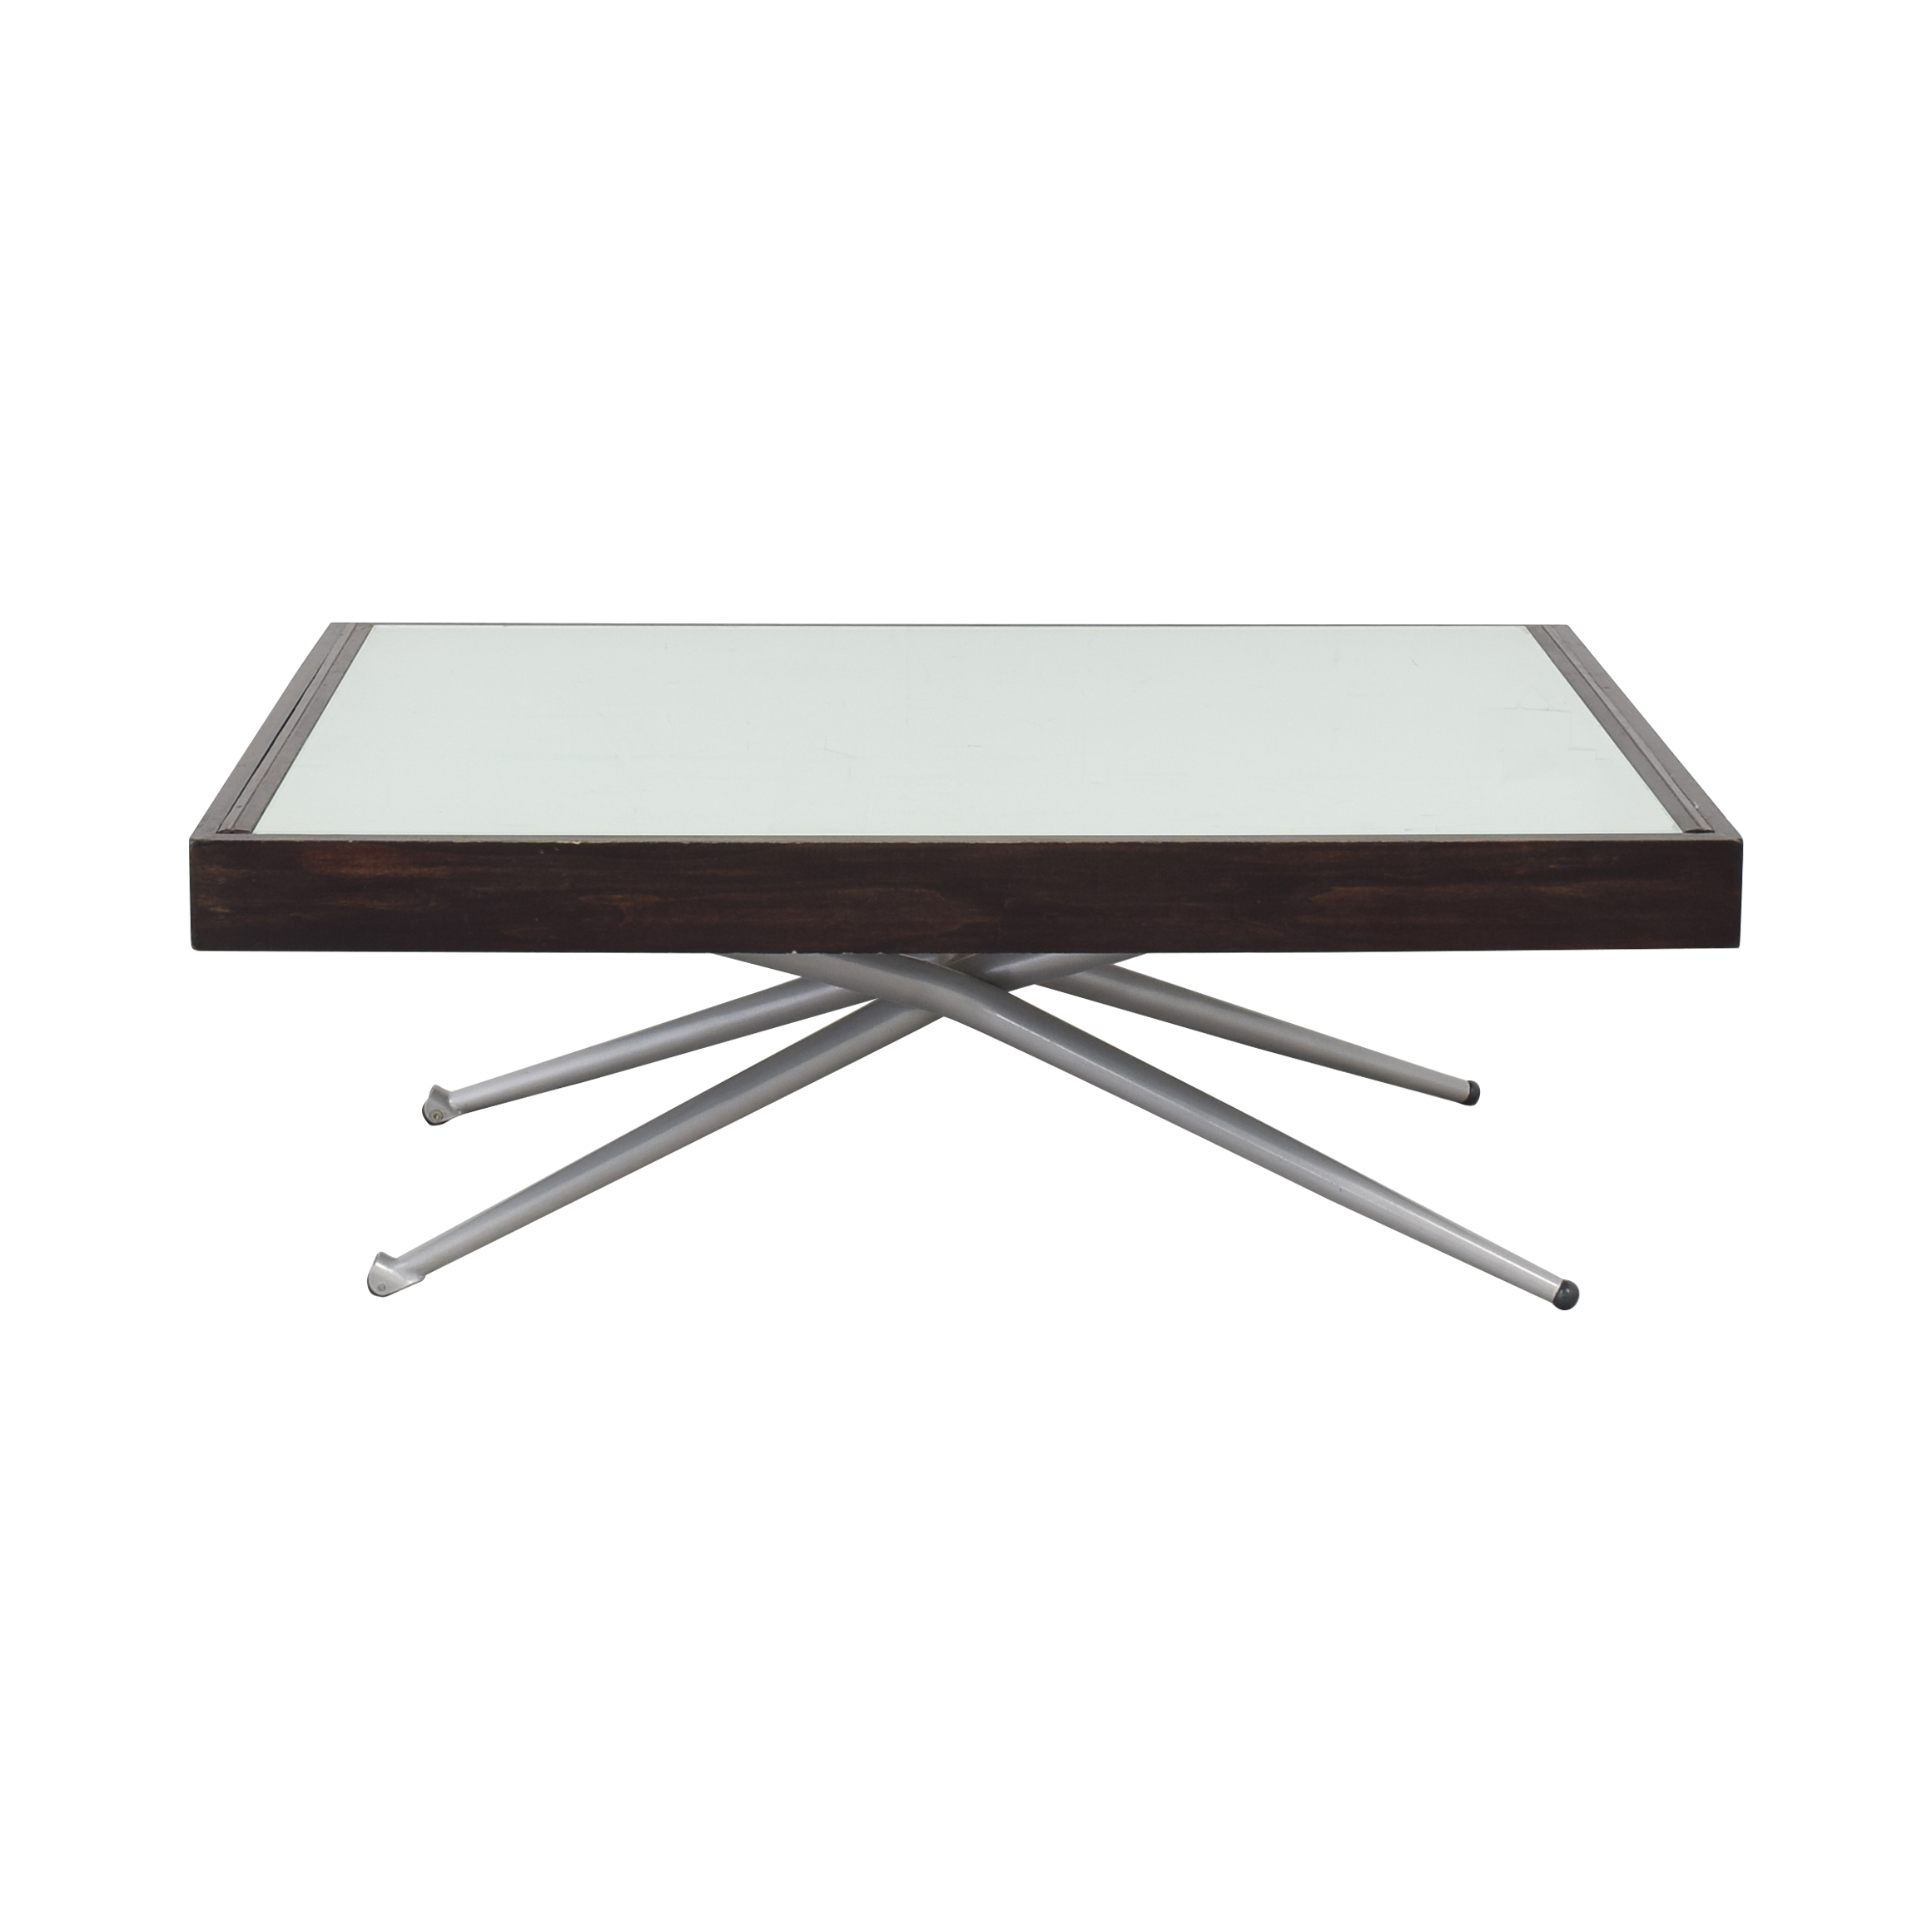 Modern Adjustable Height Coffee Table / Coffee Tables